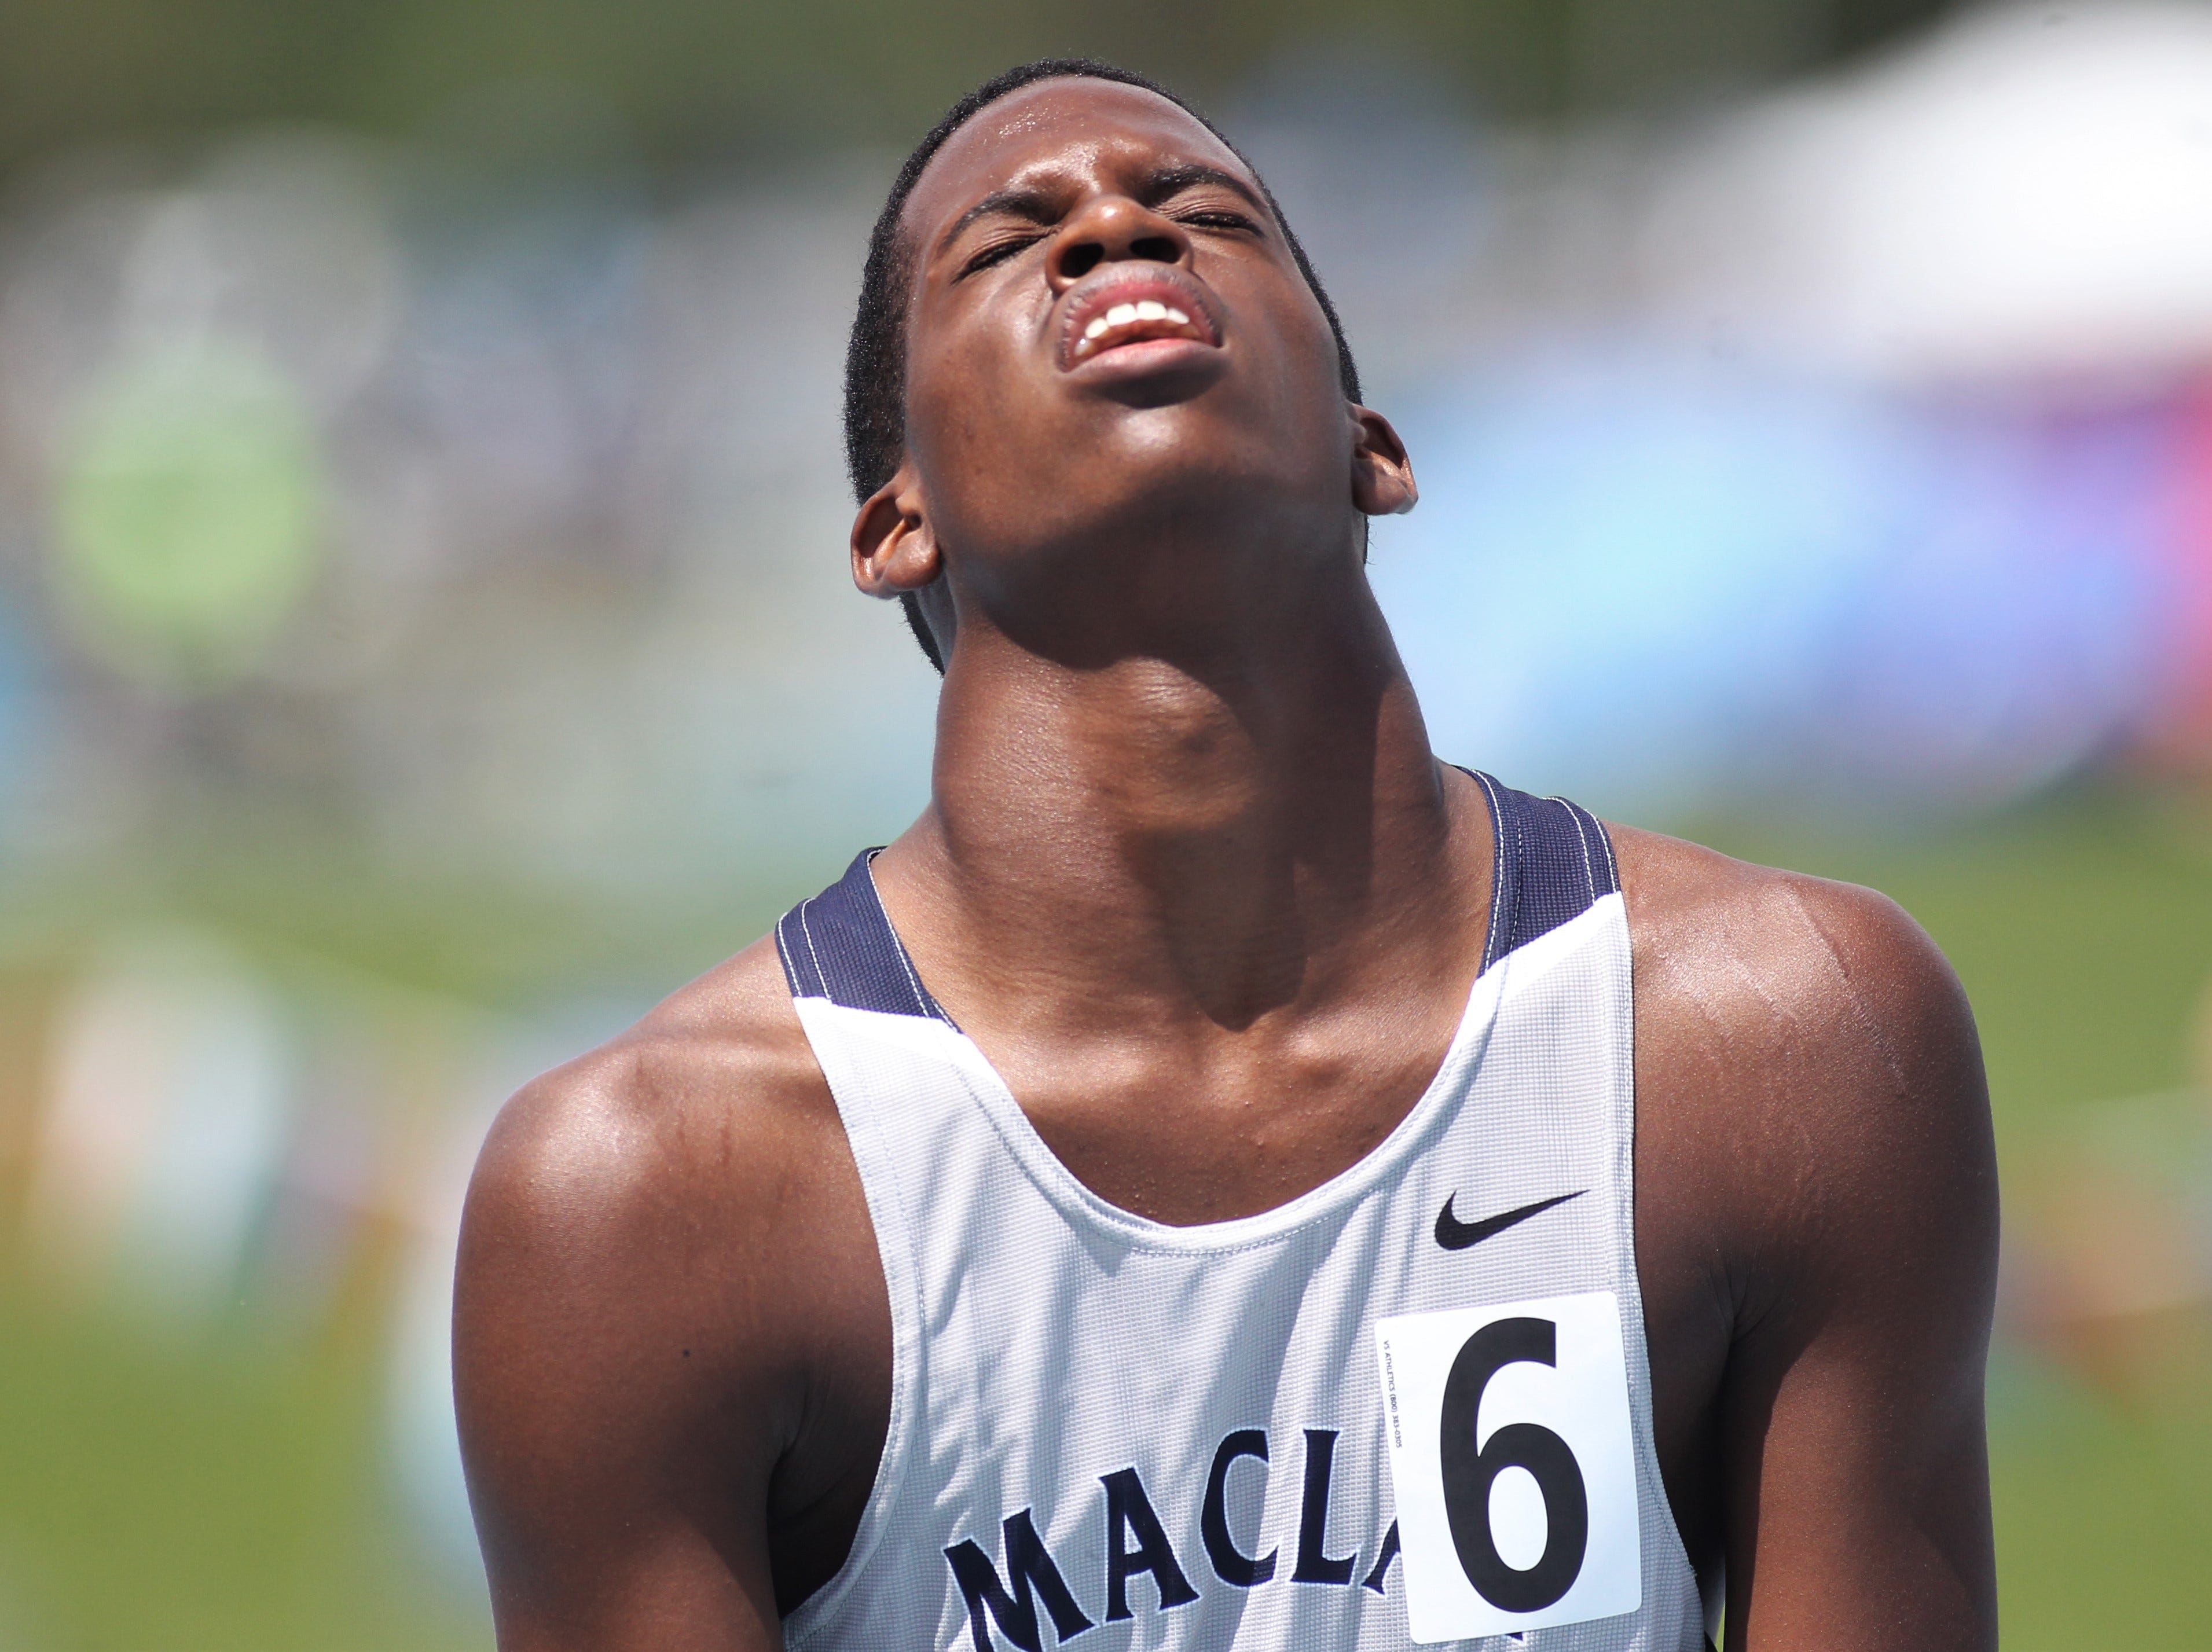 Maclay junior Gavin Rolle reacts to fatigue after the 300m hurdles, but he finished sixth in Class 1A during the FHSAA Track and Field State Championships at UNF's Hodges Stadium in Jacksonville on May 4, 2019.